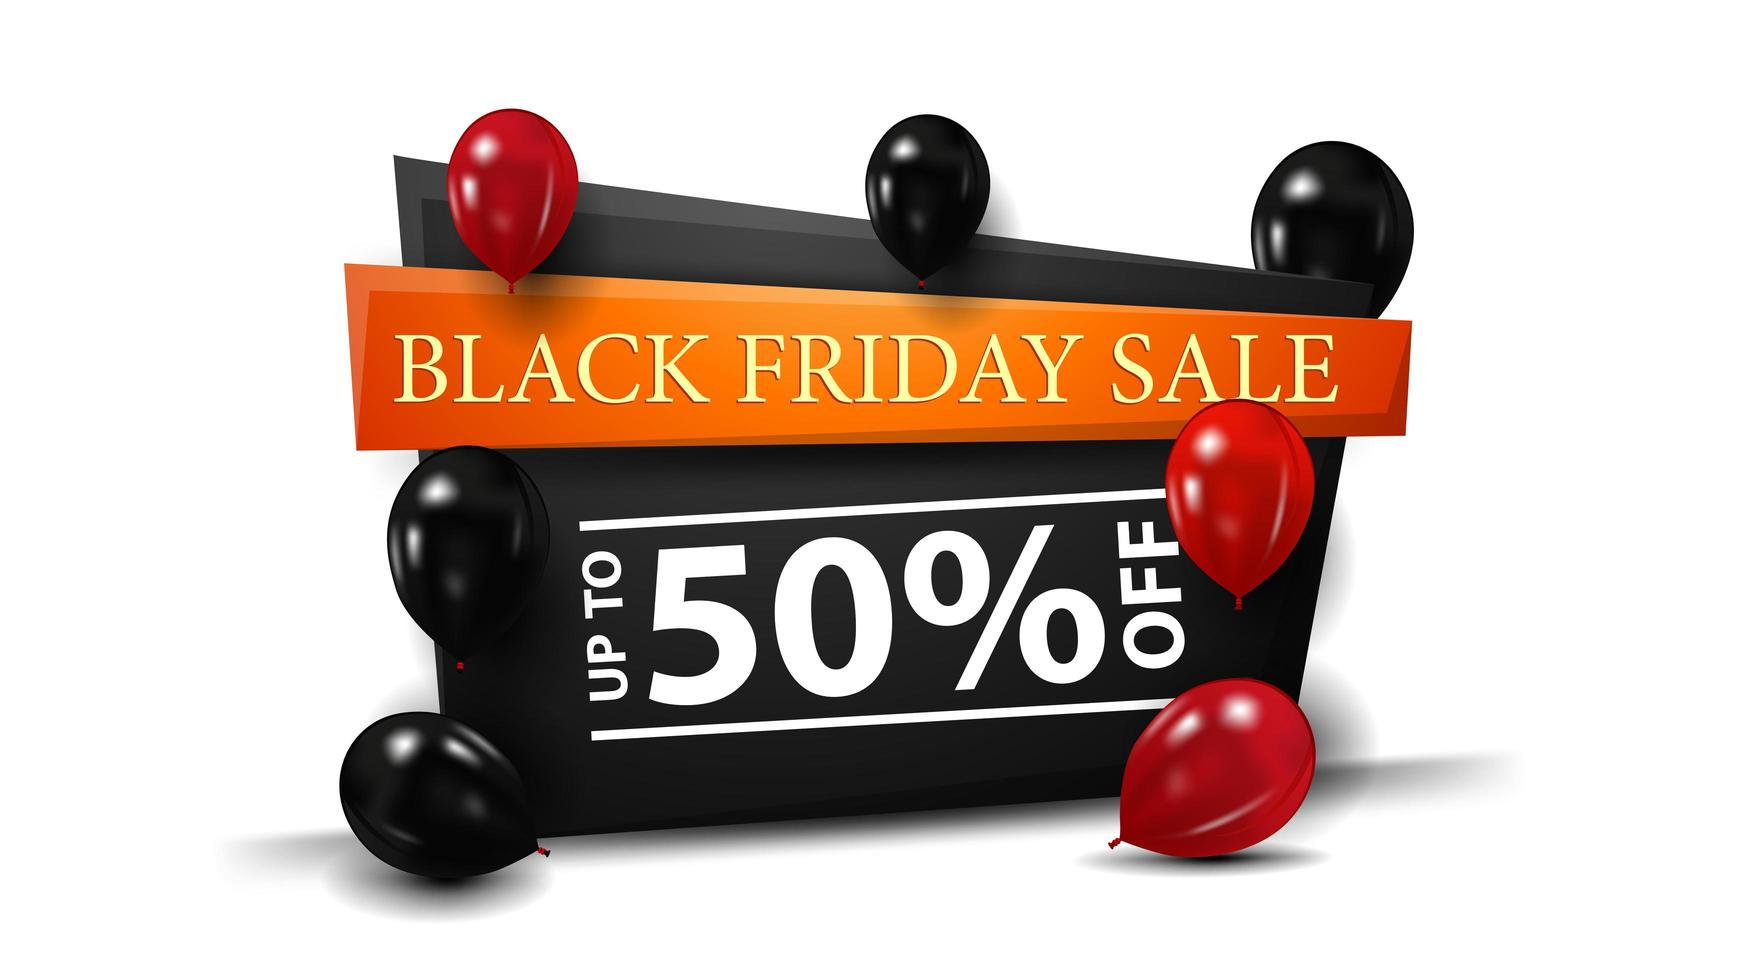 Black Friday sale, up to 50 off, black banner in the form of geometric sign with balloons. vector